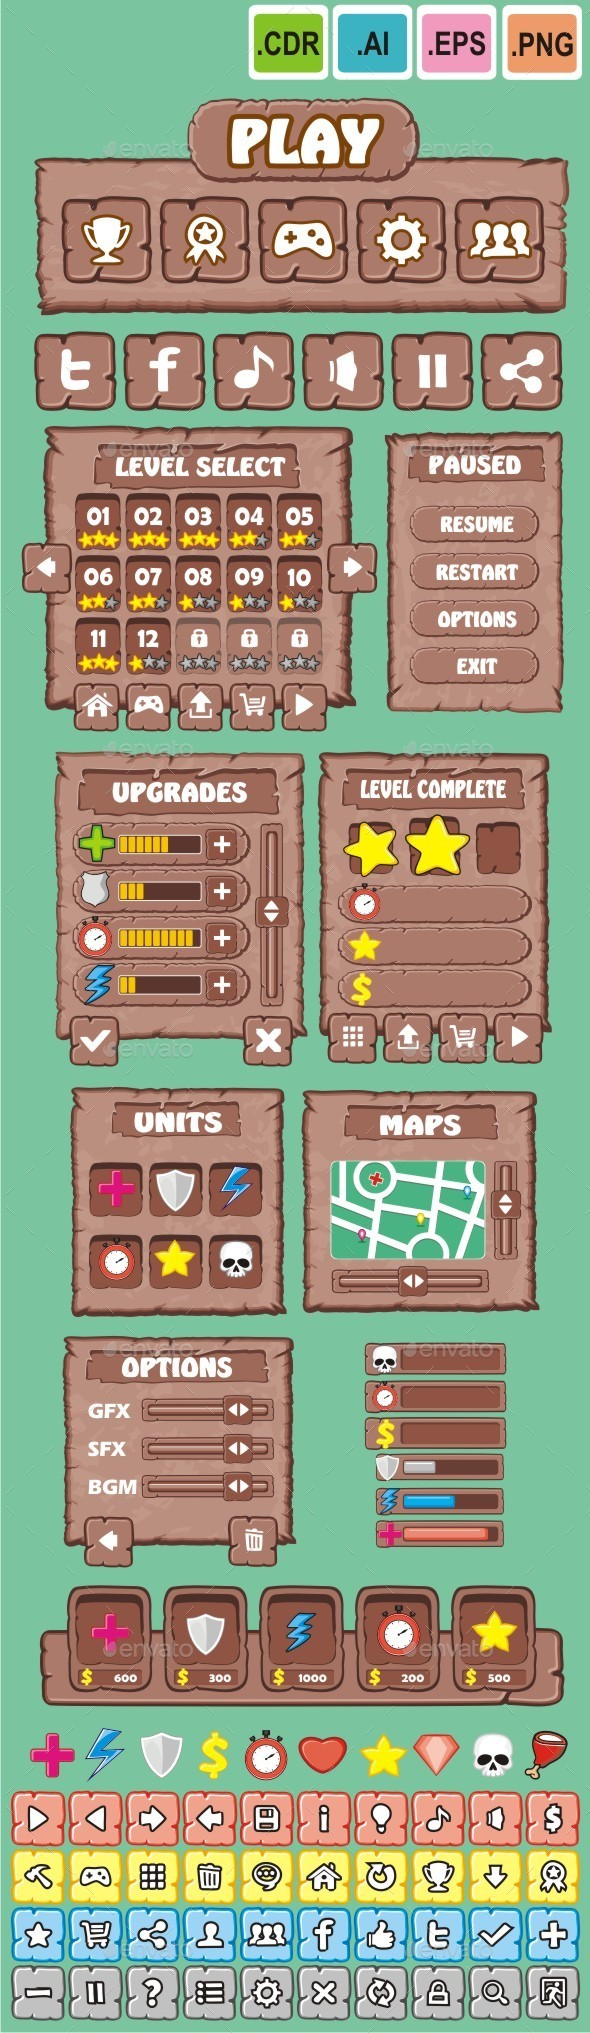 cartoon game gui pack 5 - User Interfaces Game Assets